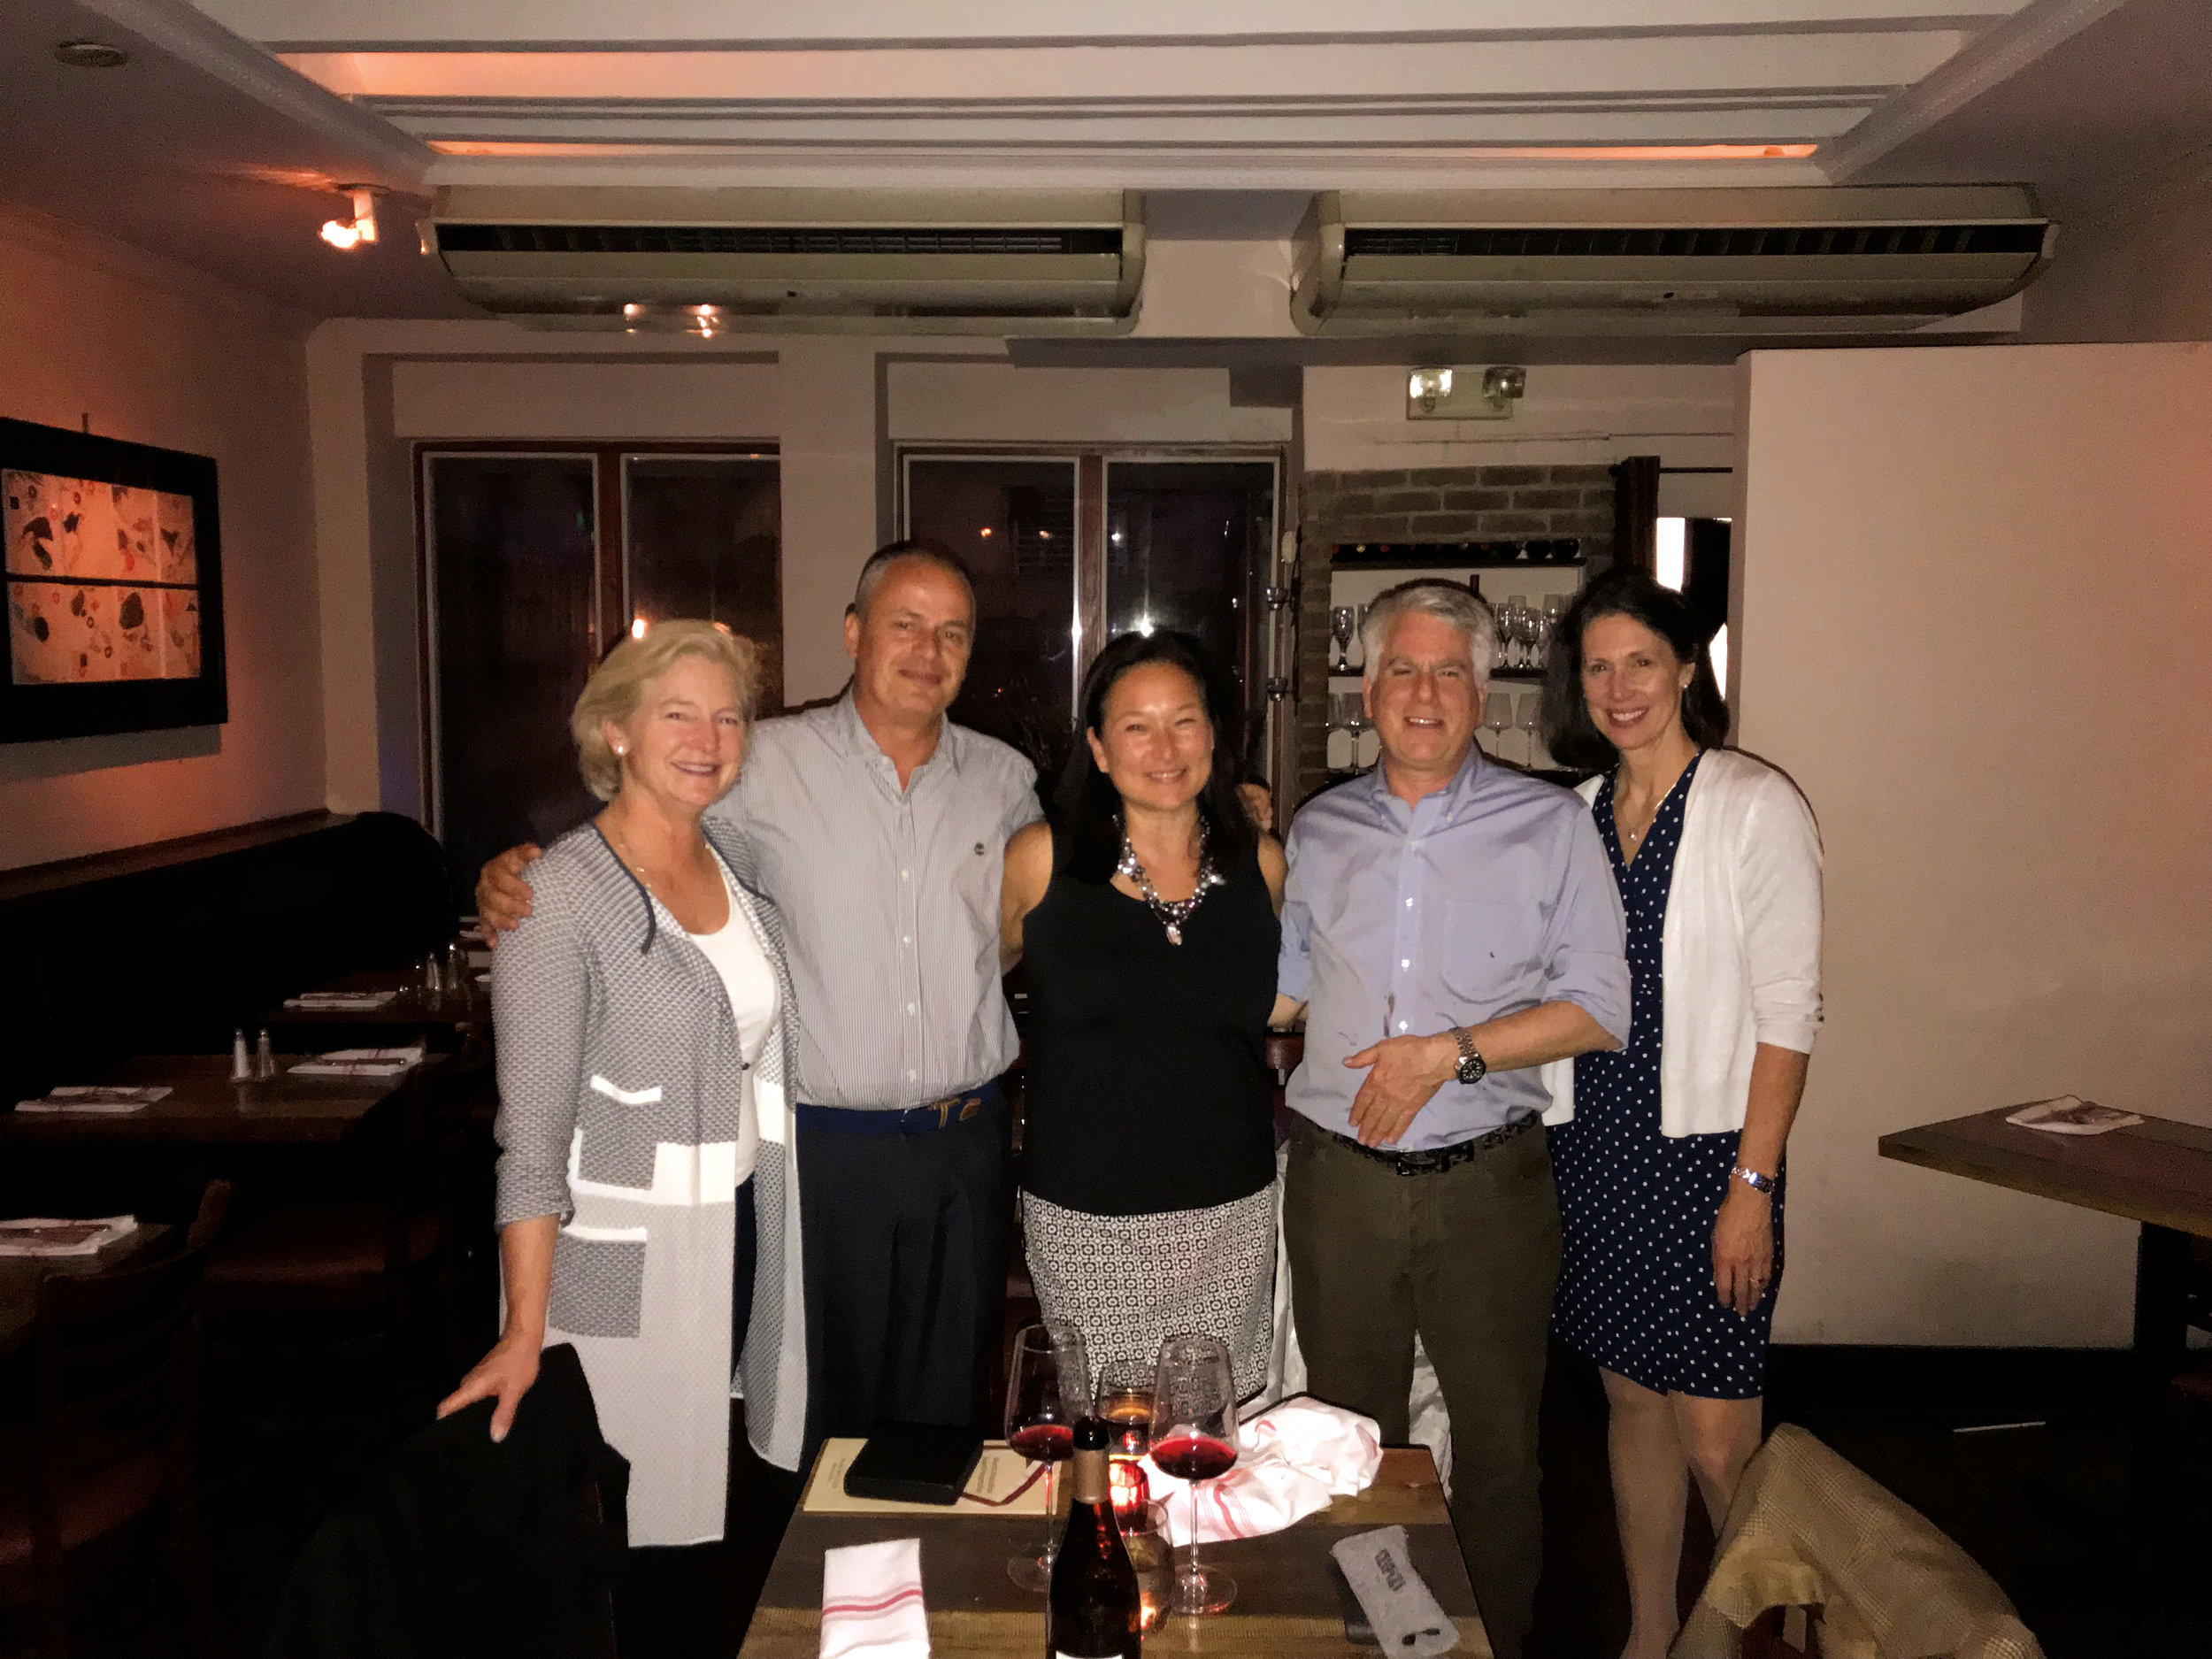 1979 Formmates (l. to r.) Sarah Bankson Newton, Etienne Poirot, Liz Overton Robbins, and George Schwab, with Mary Jo Hansen of the SPS Advancement Office, at the Annual Alumni Association Meeting in New York.